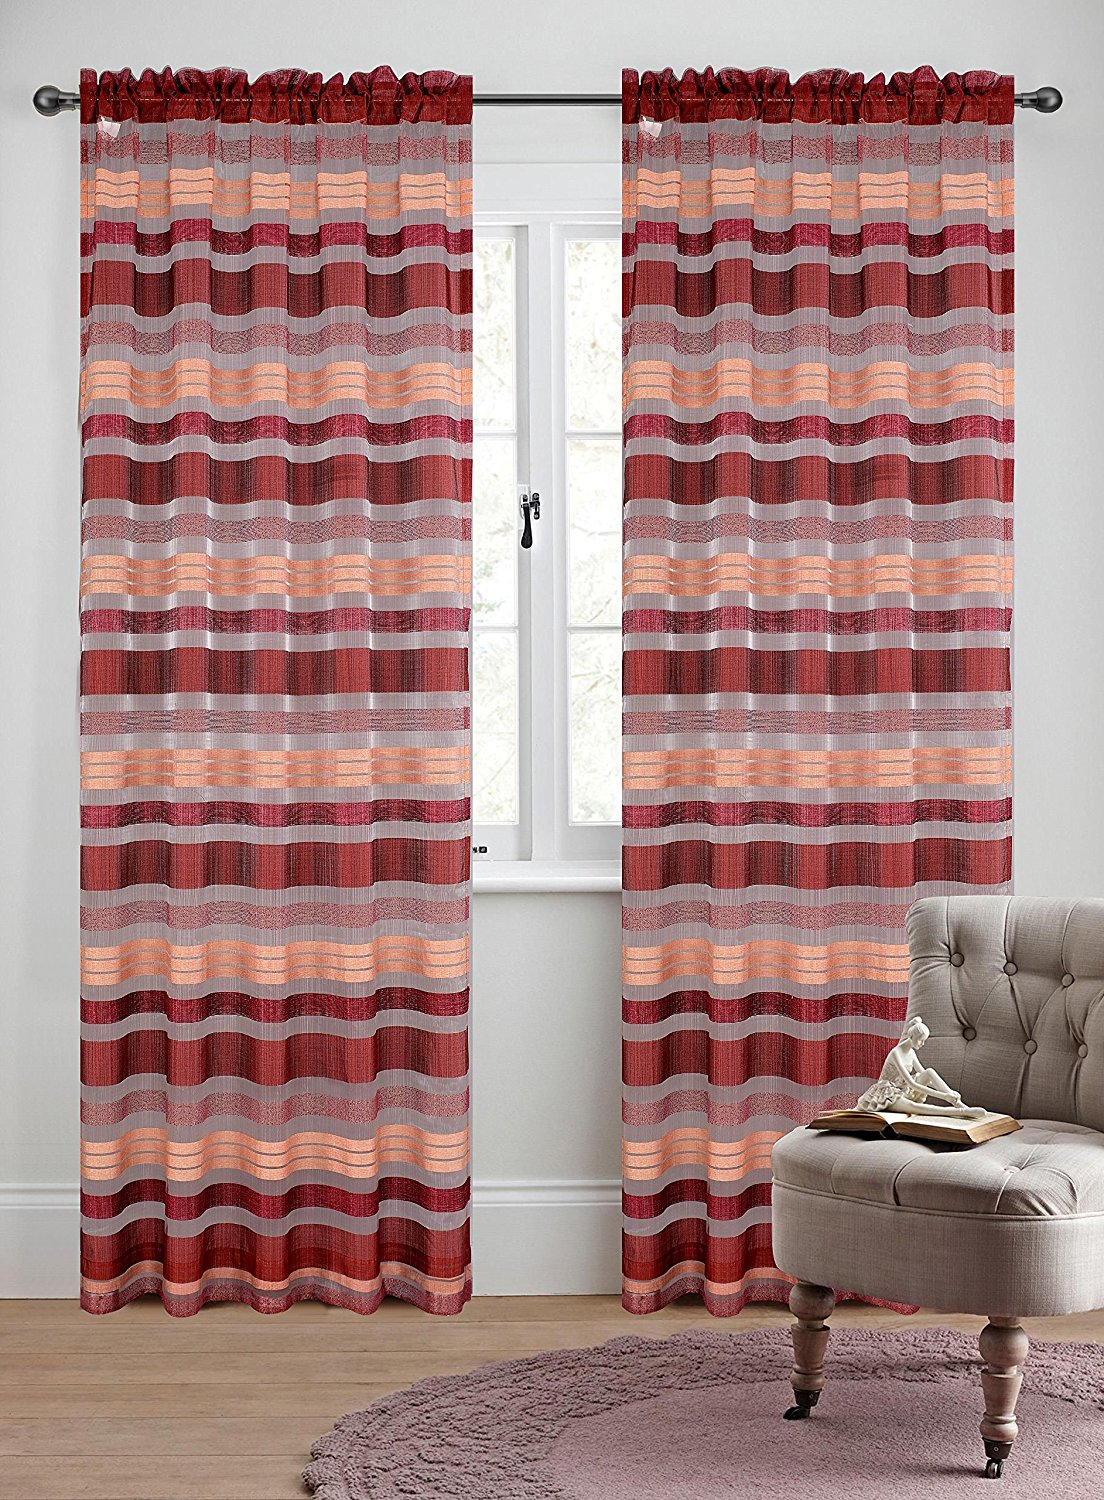 Becca Set of 2 Sheer Curtain Panels - 5 Colors